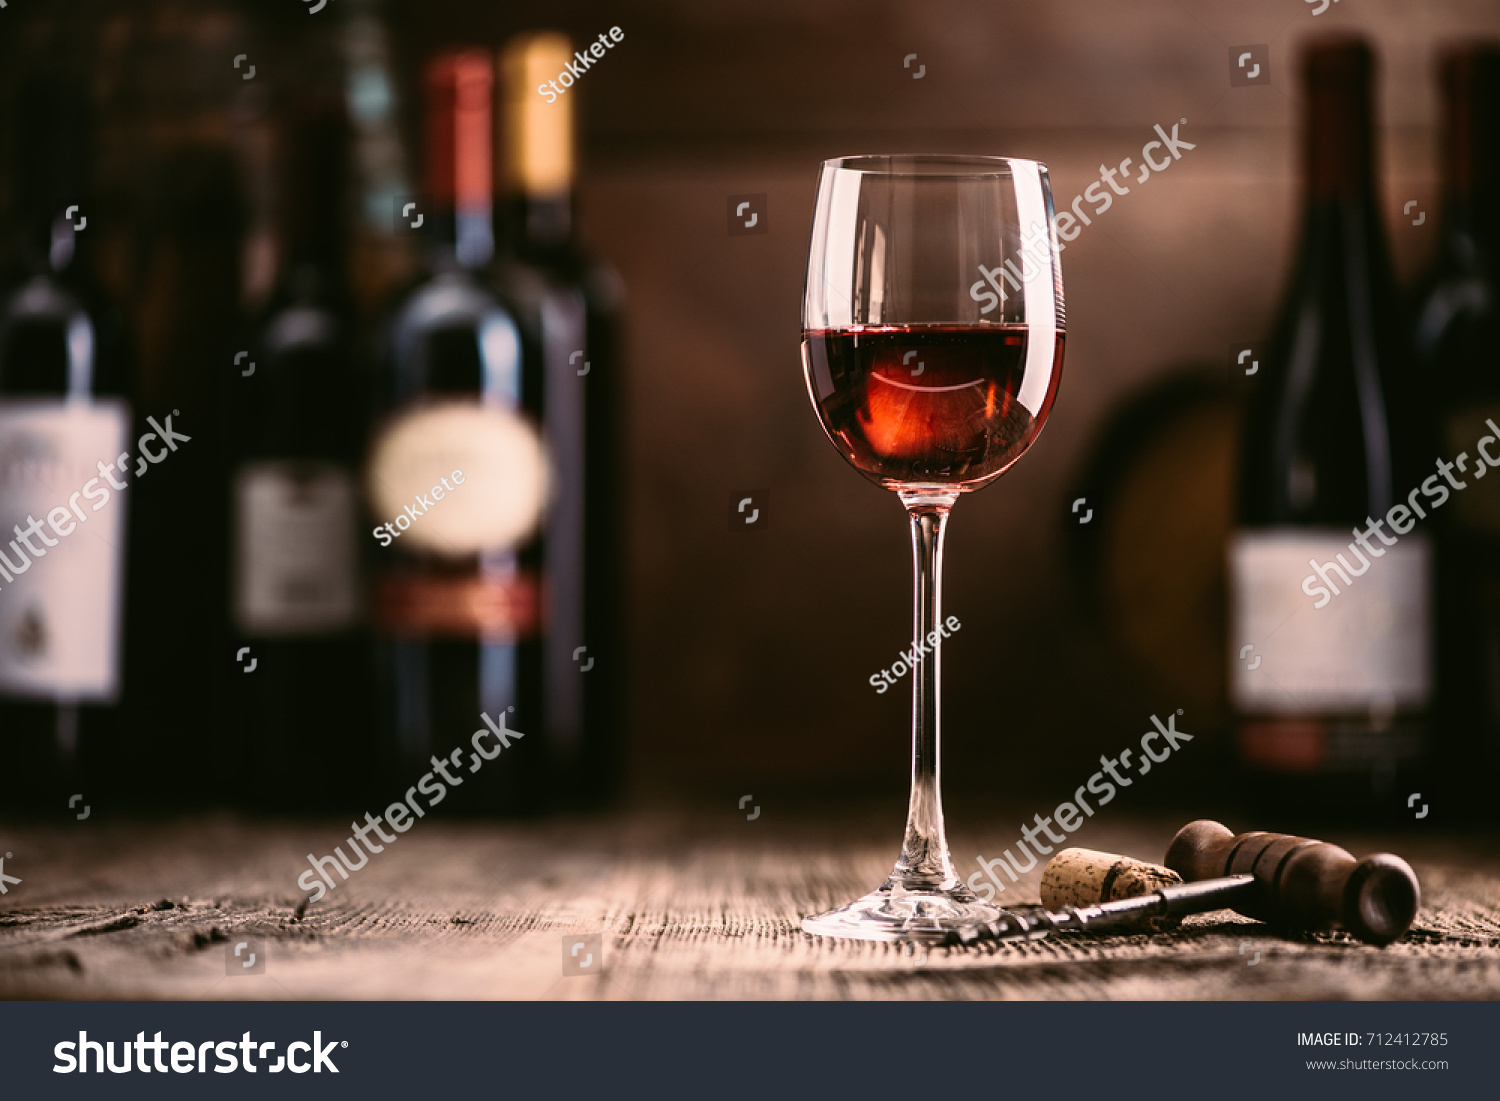 Wine tasting experience in the rustic cellar and wine bar: red wine glass and collection of excellent wines on the background #712412785